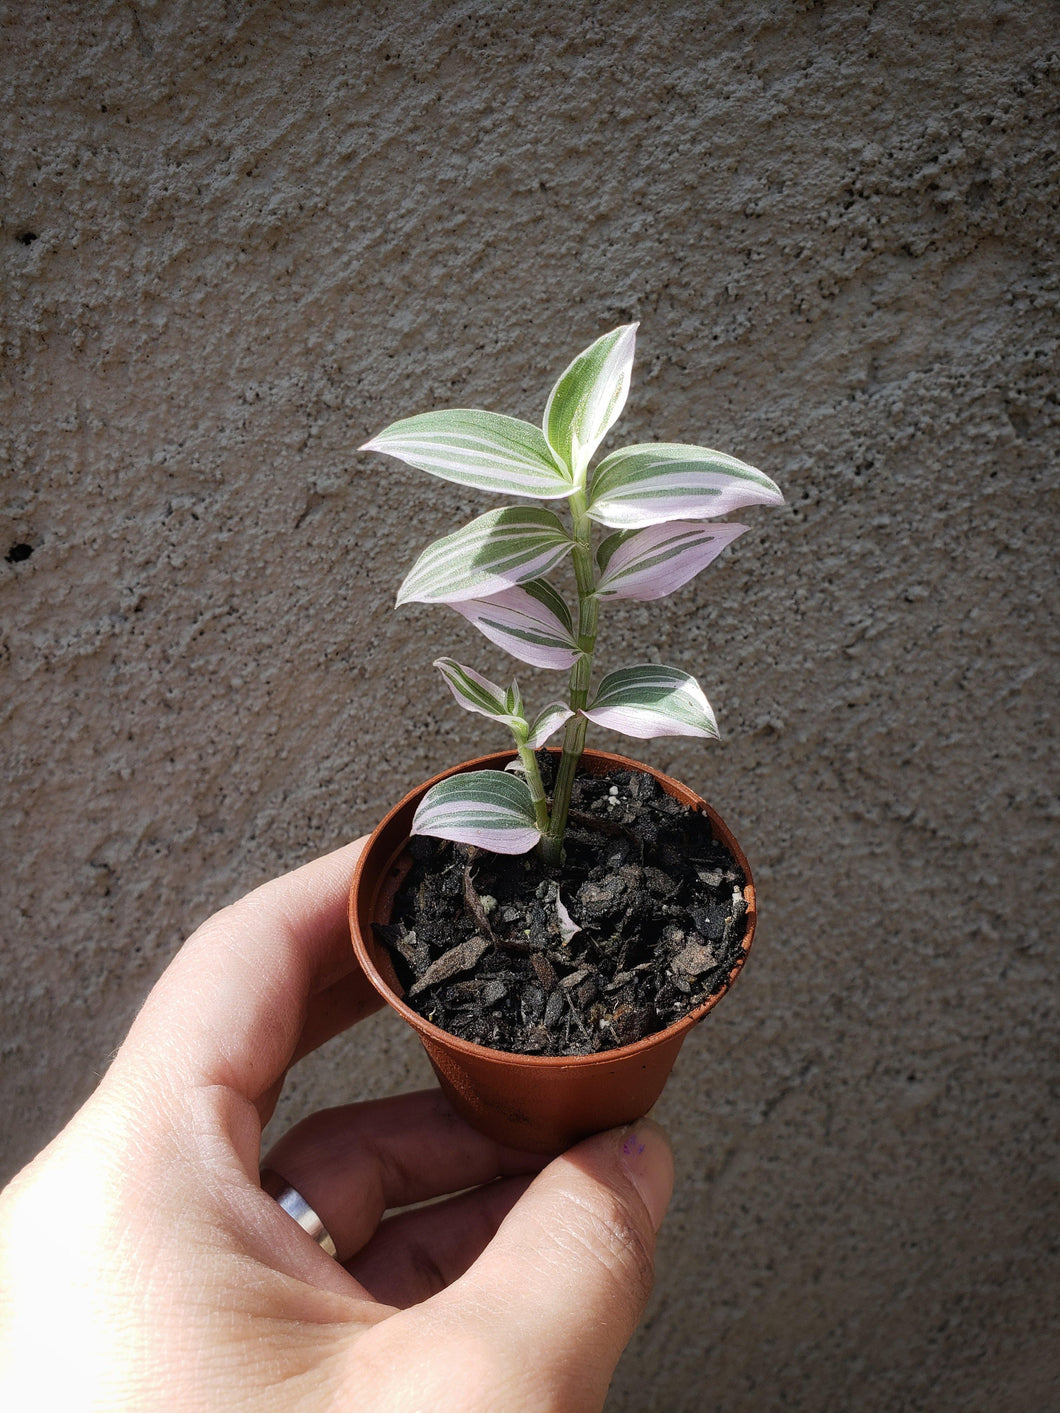 RARE Wandering Jew Lavender / Purple Tradescantia / Pink Inch Plant - Houseplant Collection